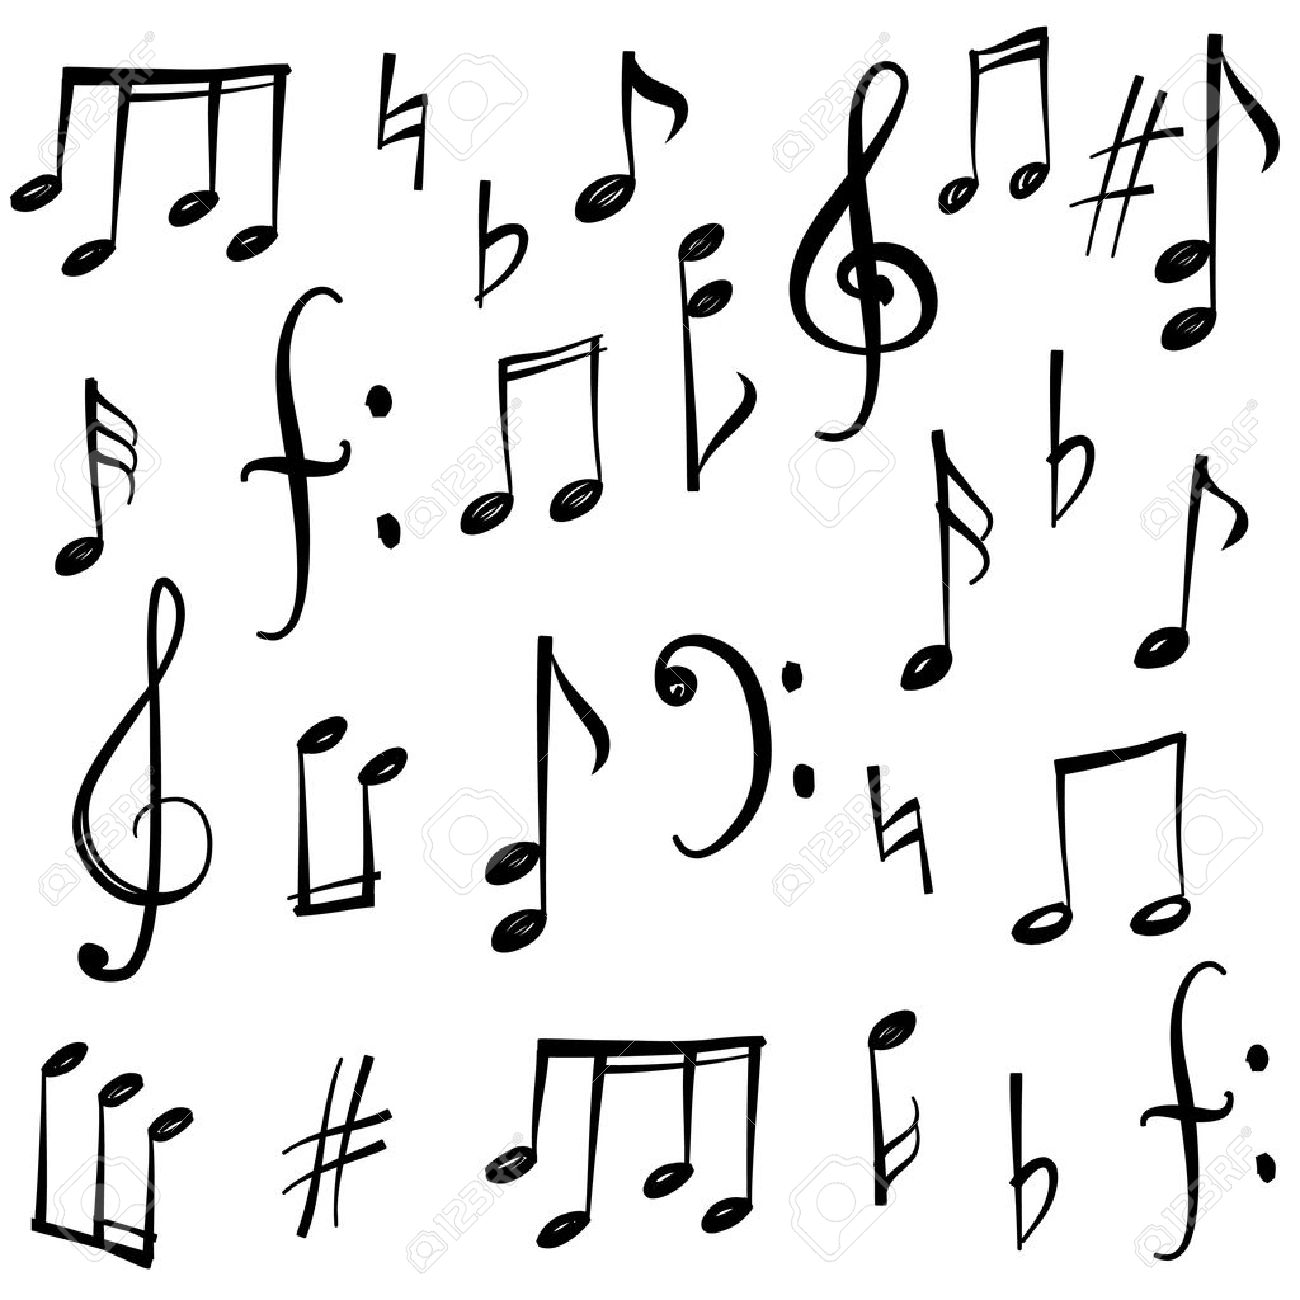 1300x1300 Music Notes And Signs Set. Hand Drawn Music Symbol Sketch